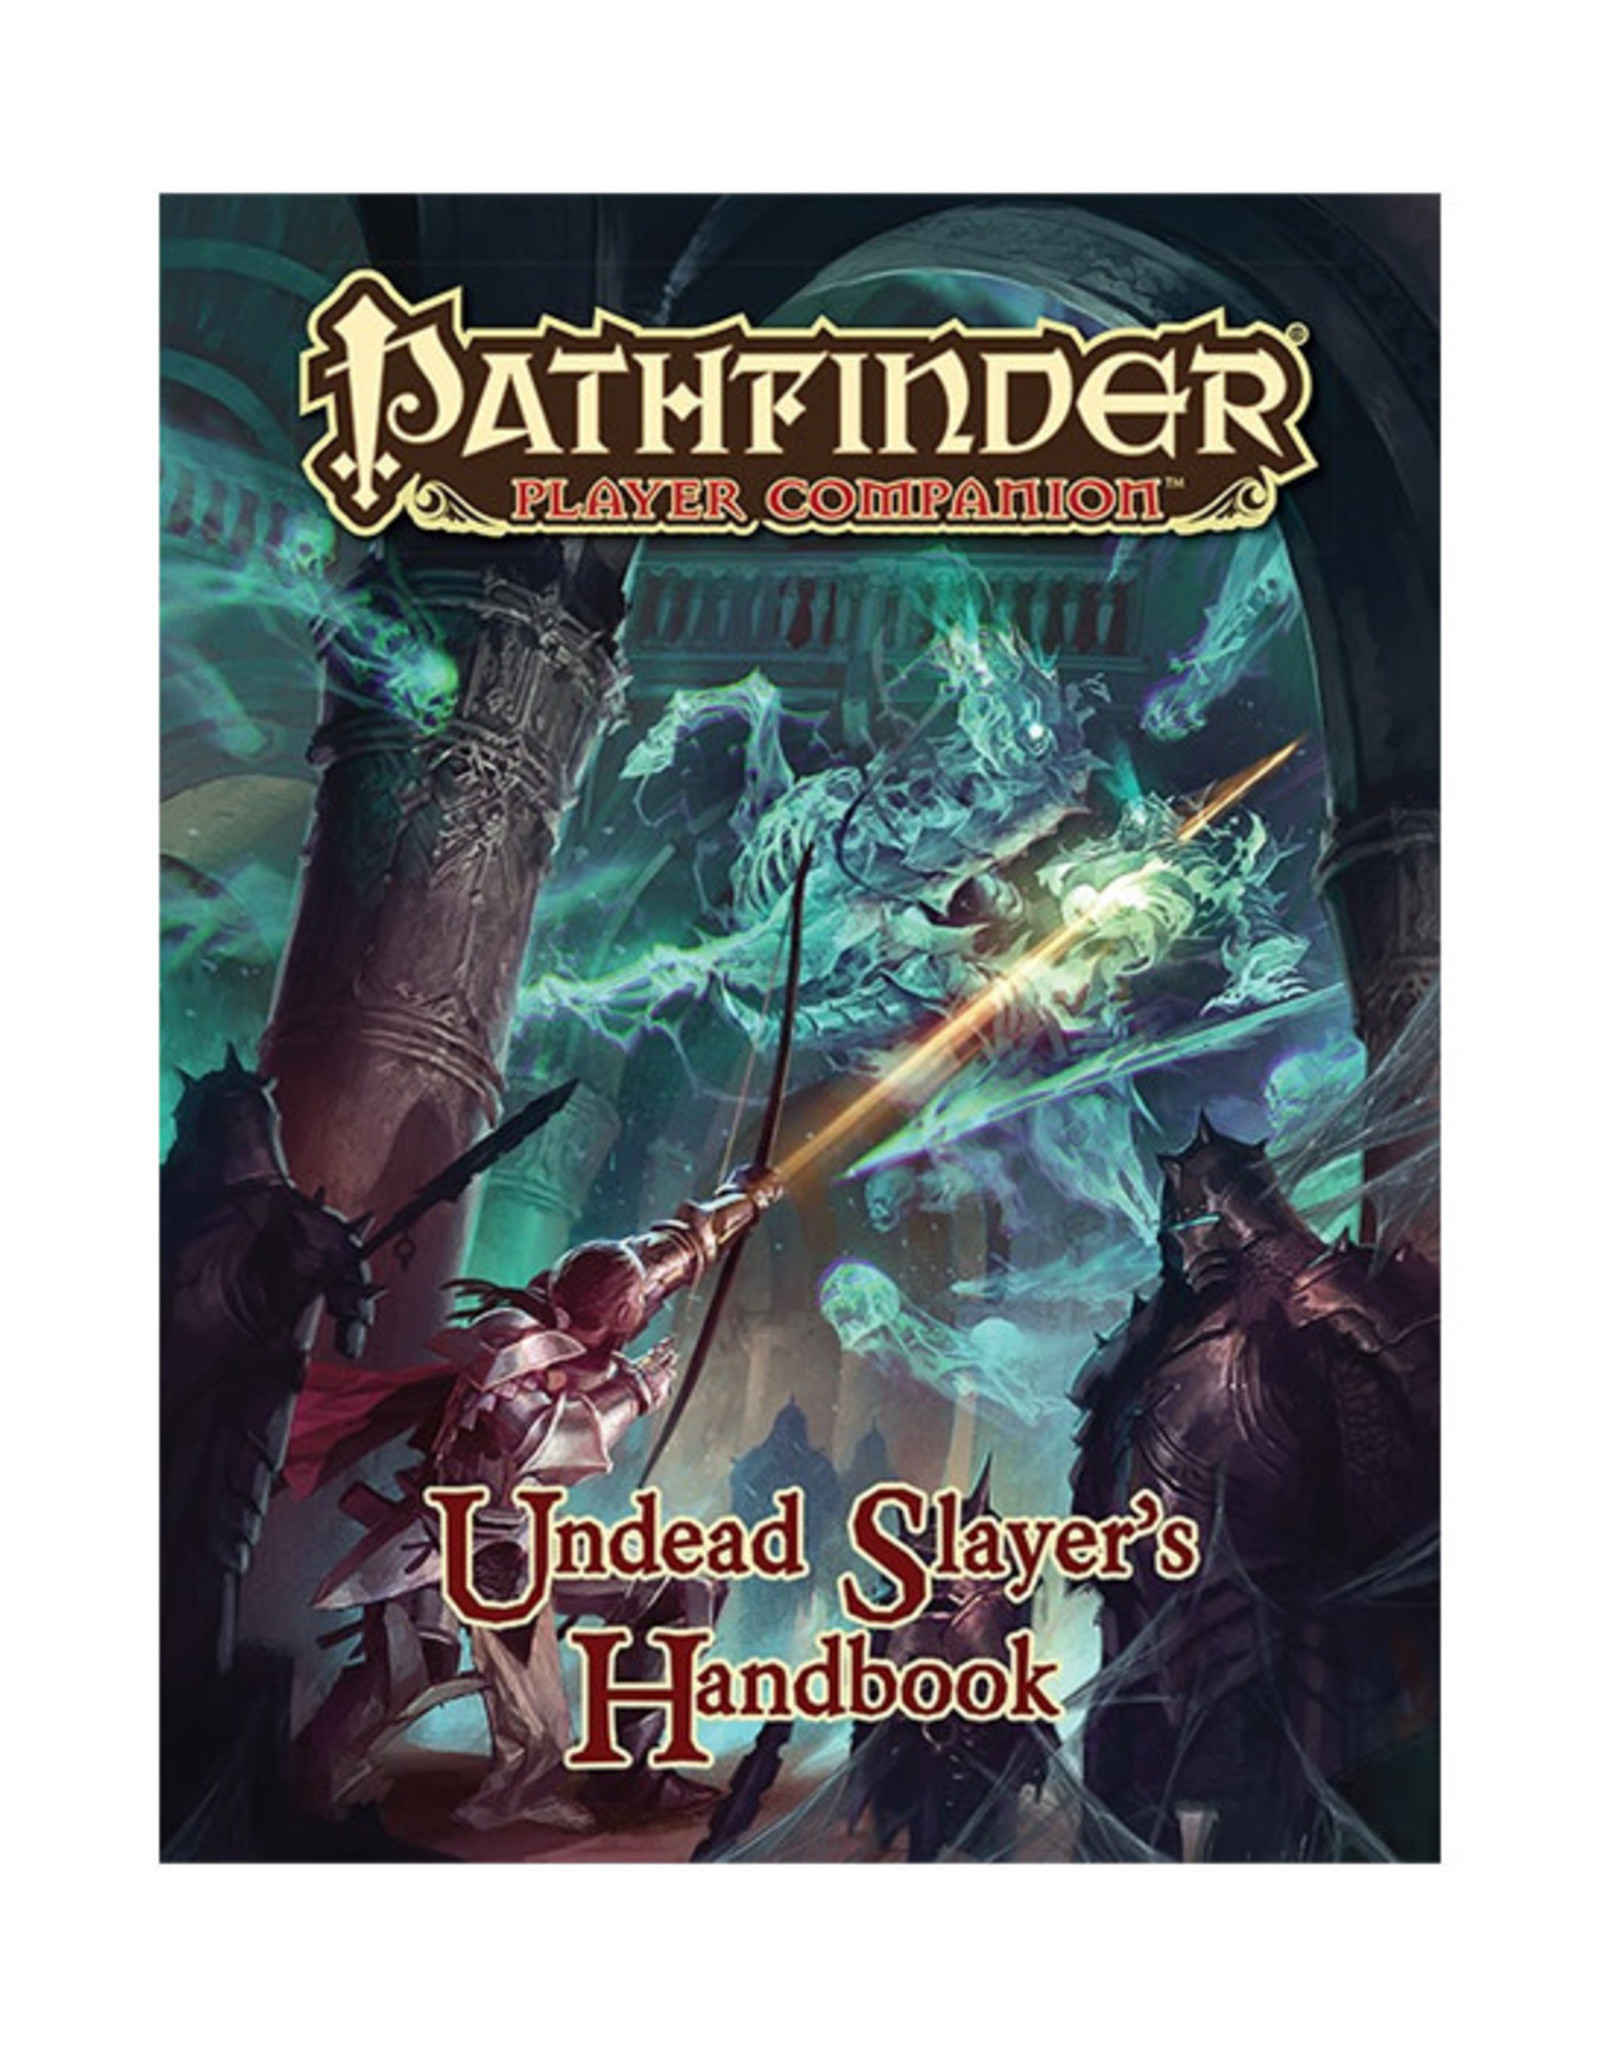 Pathfinder Pathfinder: Player Companion - Undead Slayer's Handbook